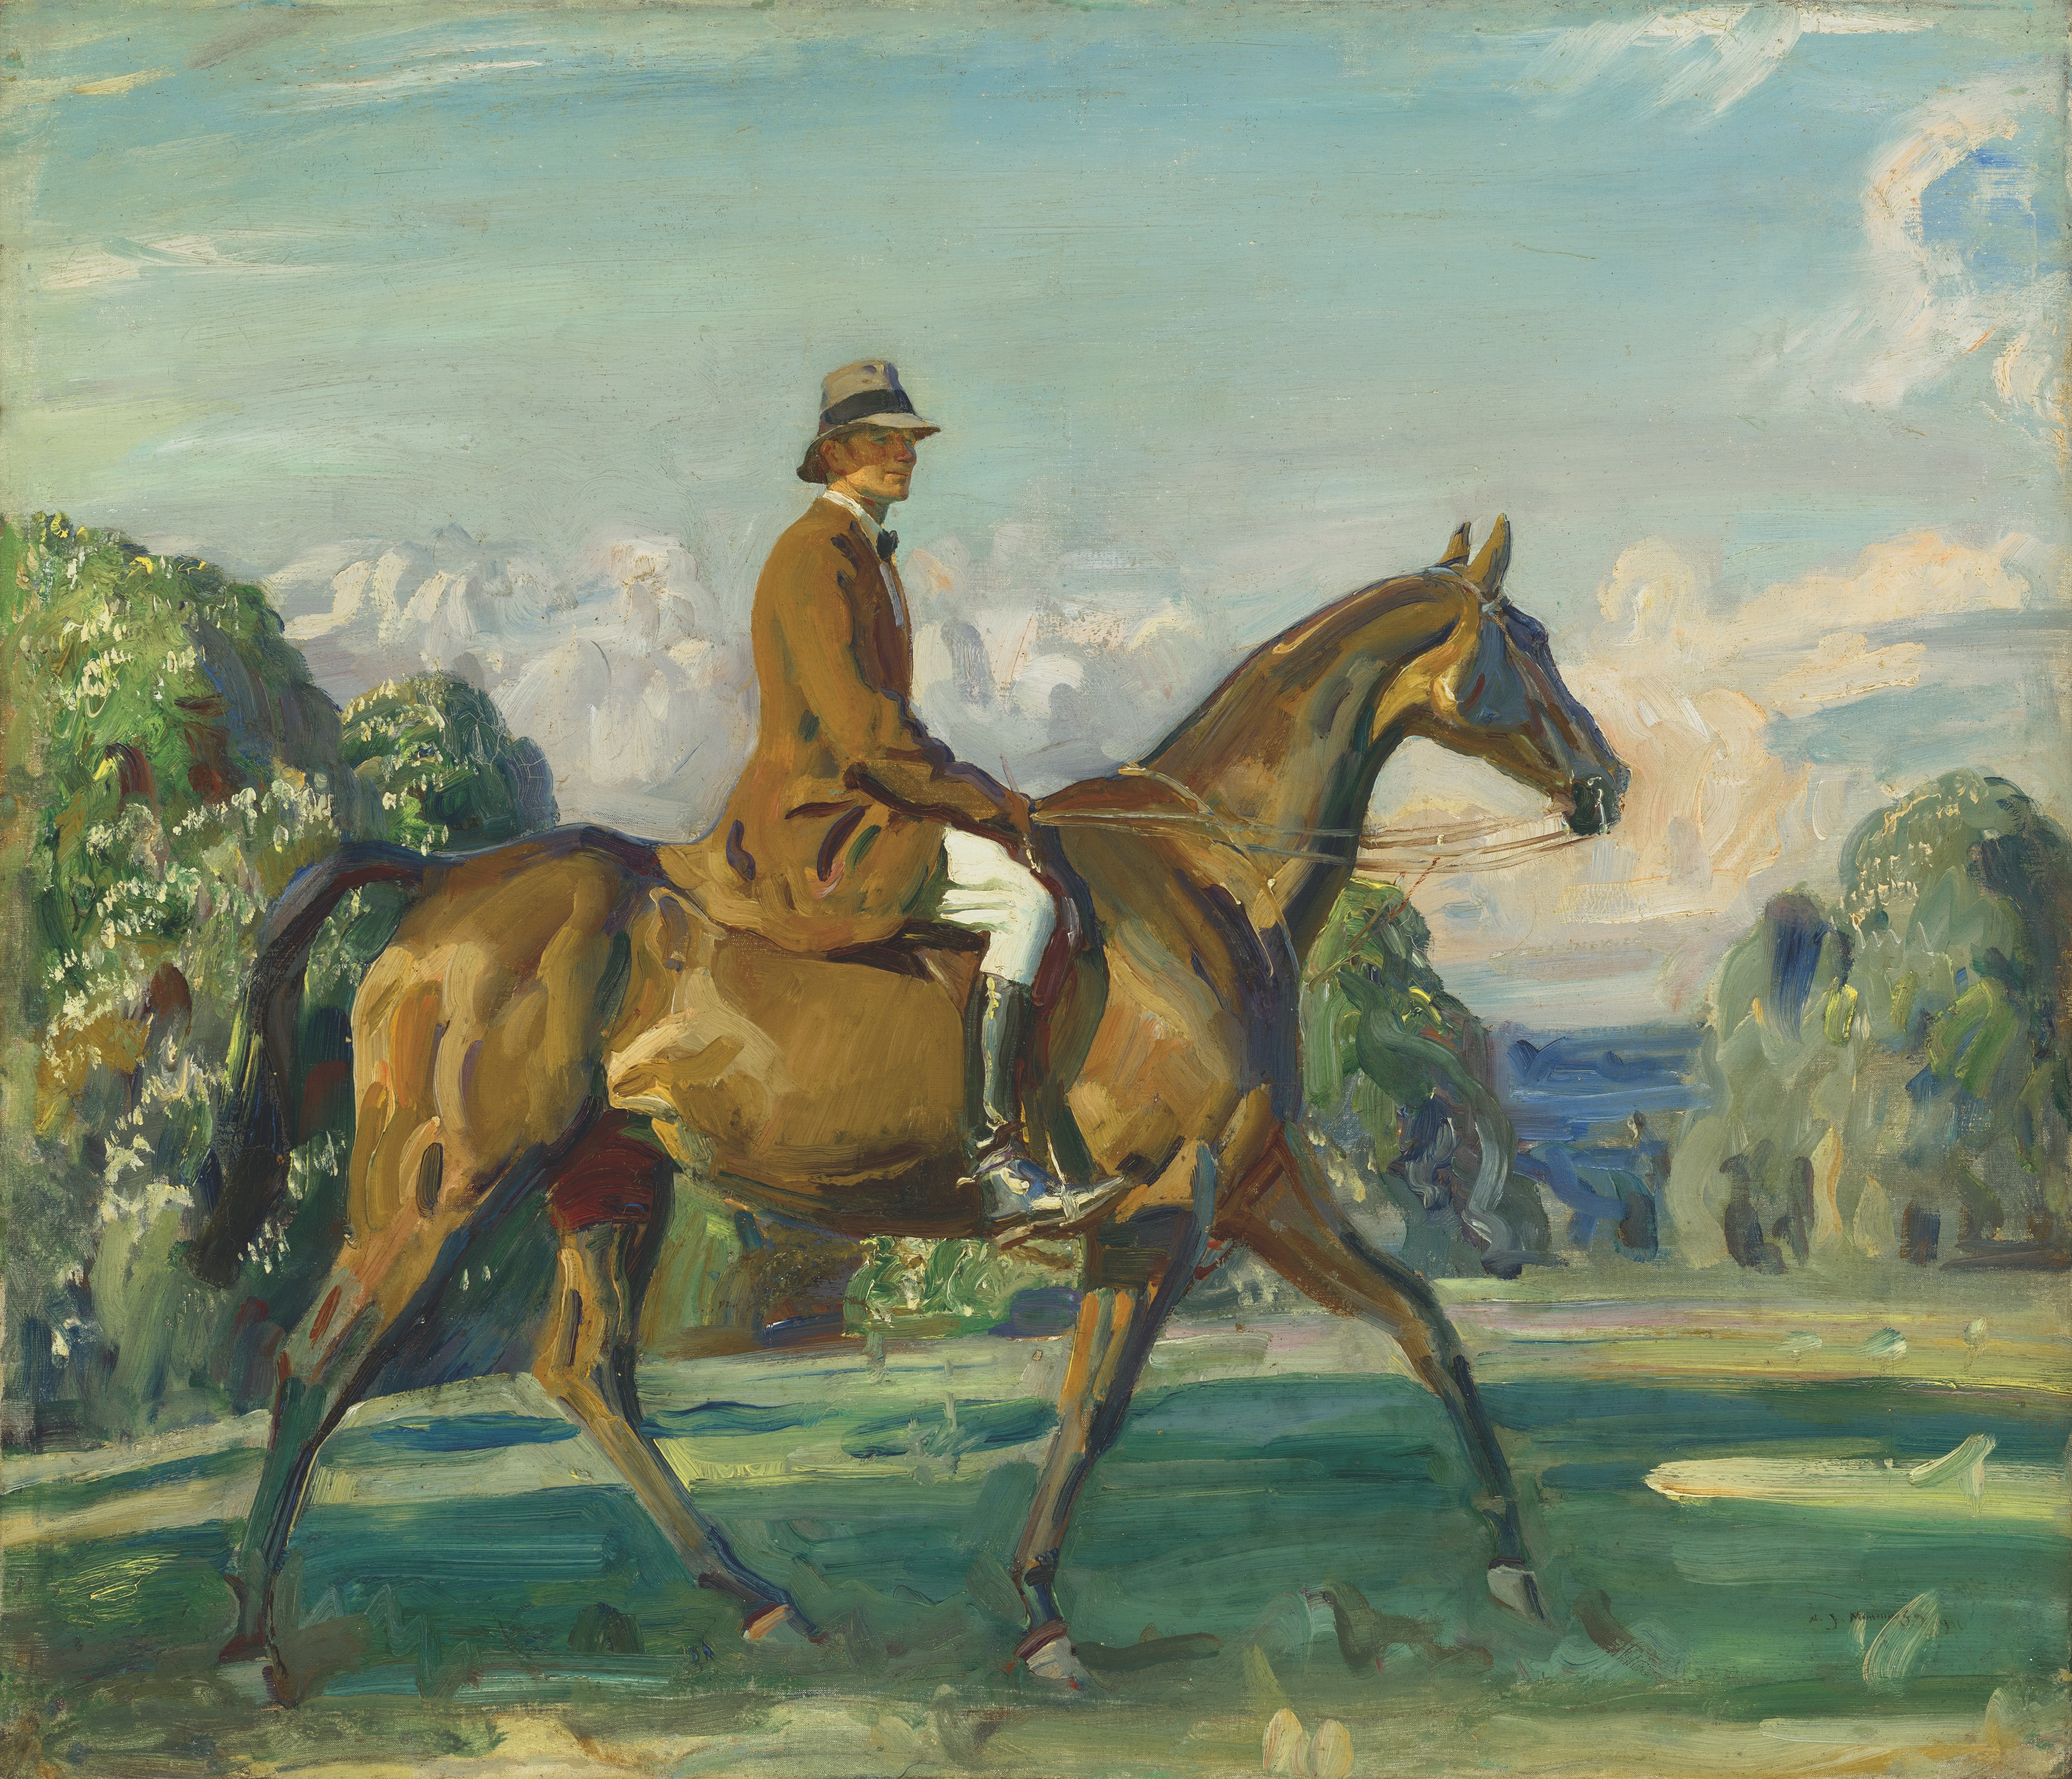 Sir Alfred James Munnings, P.R.A., R.W.S. (1878-1959), Major Mead on his Favourite Hunter, 1921. Oil on canvas. 21 x 25  in (53.4 x 63.5  cm). Estimate £70,000-100,000. Offered in The B.J. Eastwood Collection Important Sporting and Irish Pictures on 9 July 2021 at Christie's in London